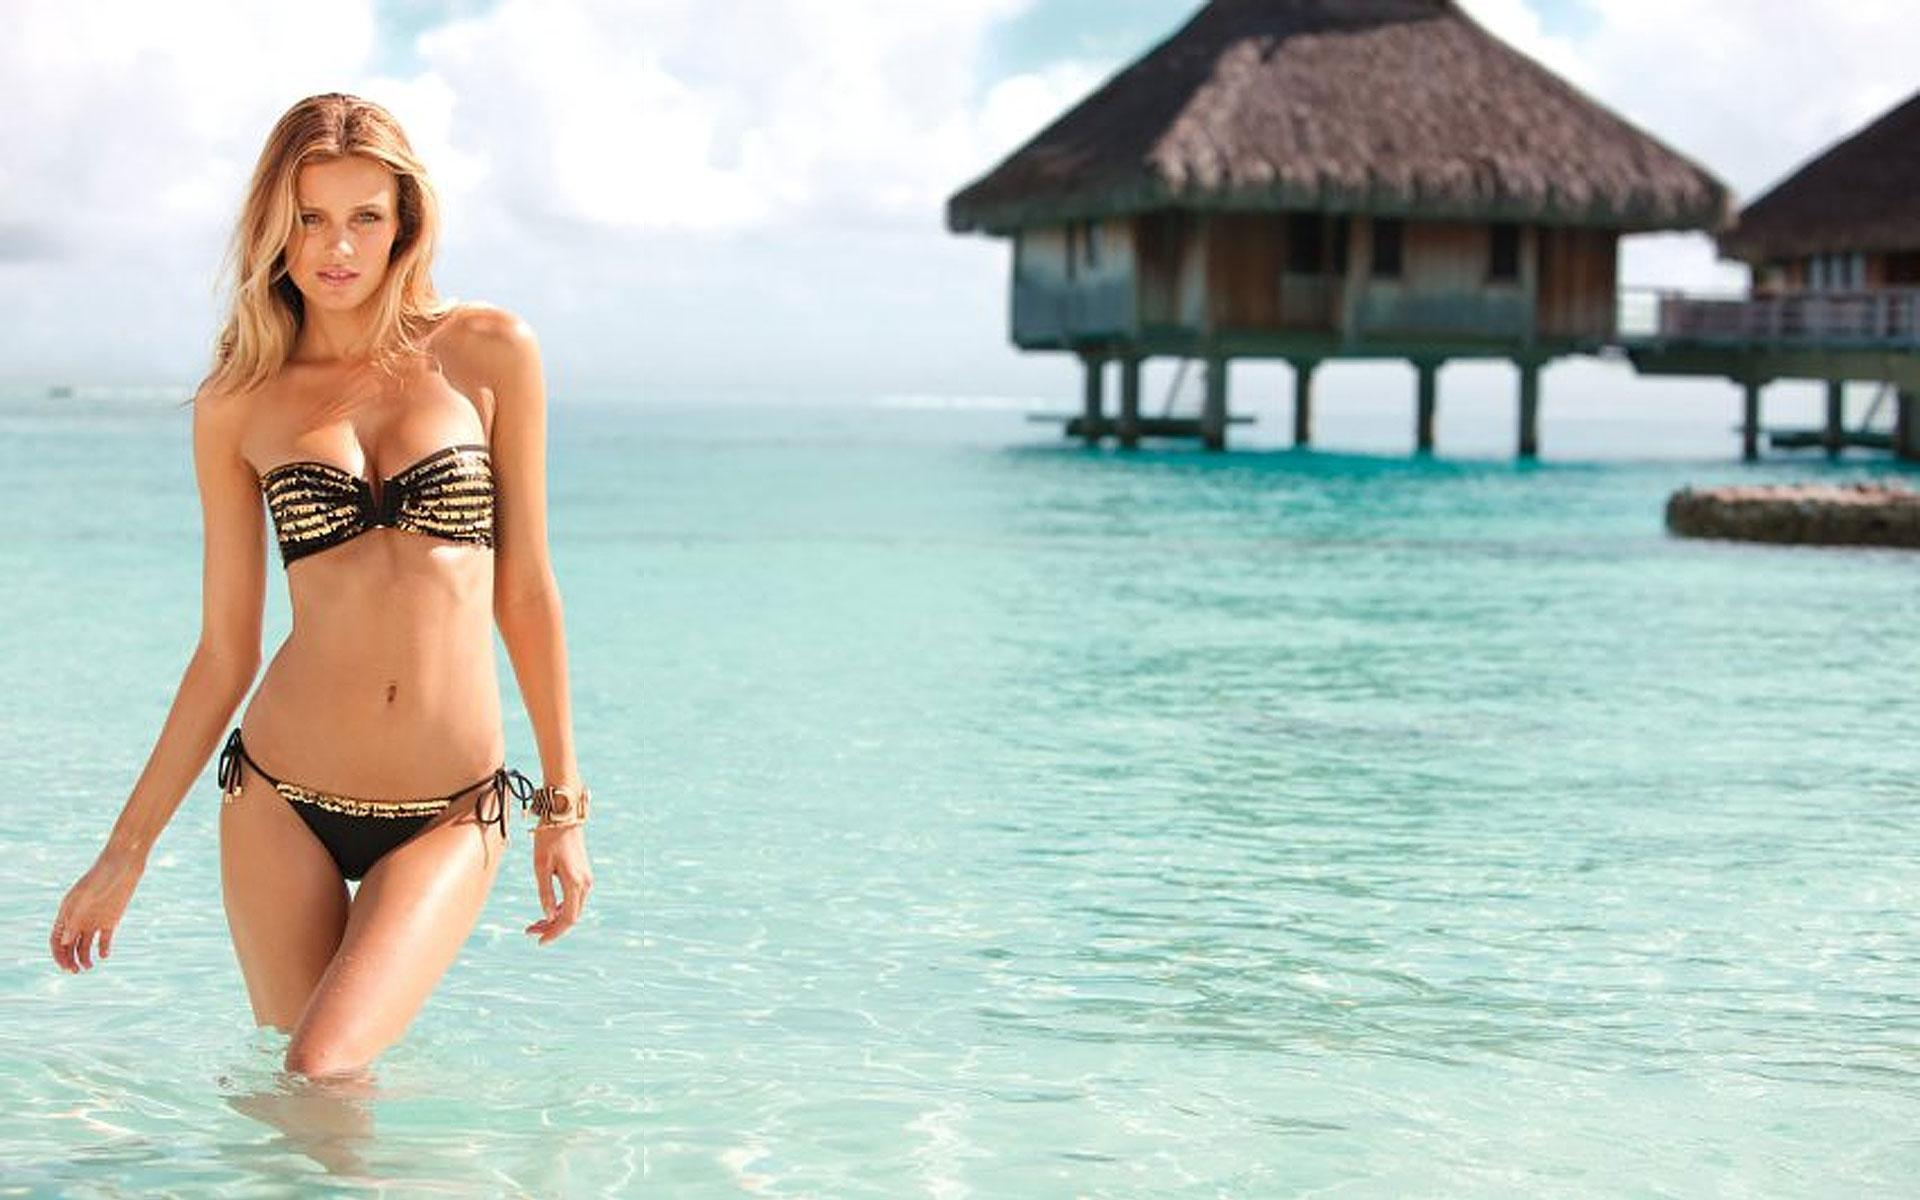 Sexy Hot Beach Bikini Girls Wallpaper For Android Apk Download